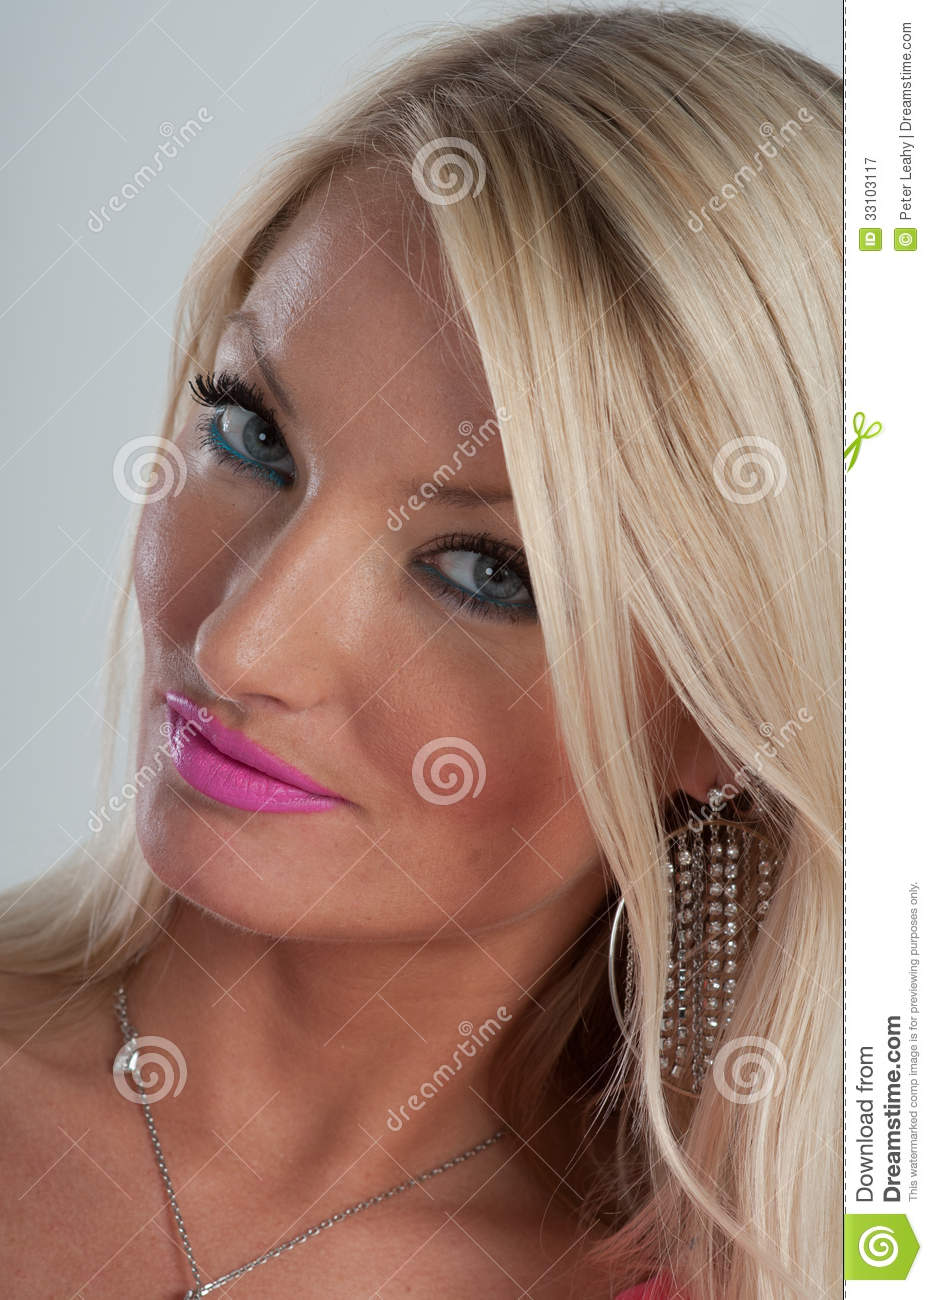 Pink Lipstick Blue Eyes And Blonde Hair Royalty Free